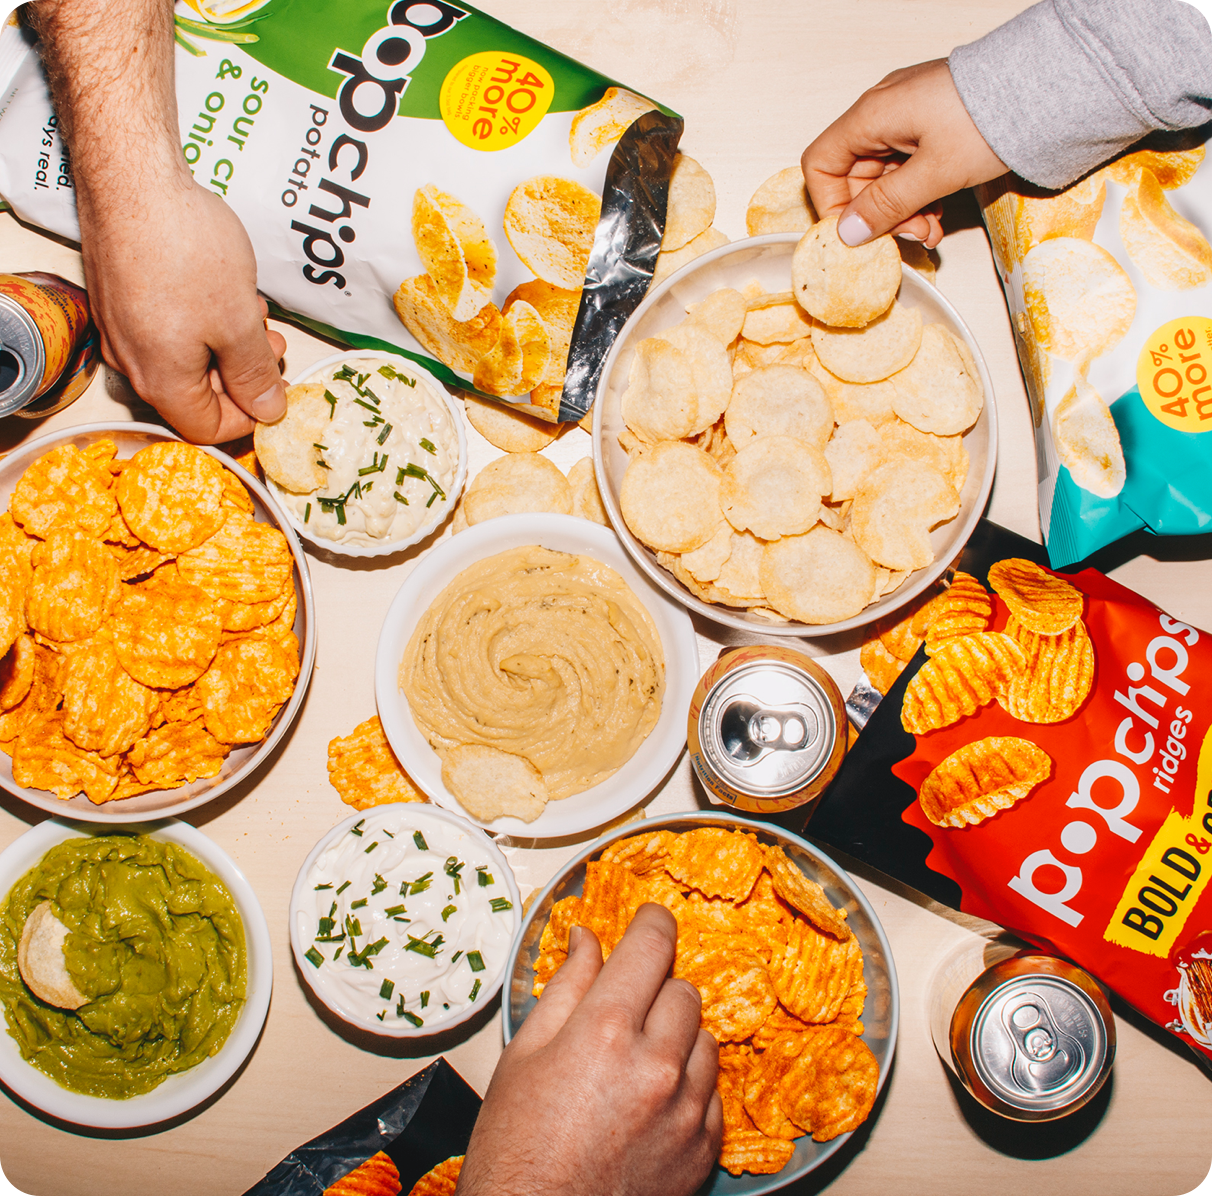 multiple popchips bags with bowls of dip and soda cans on a table